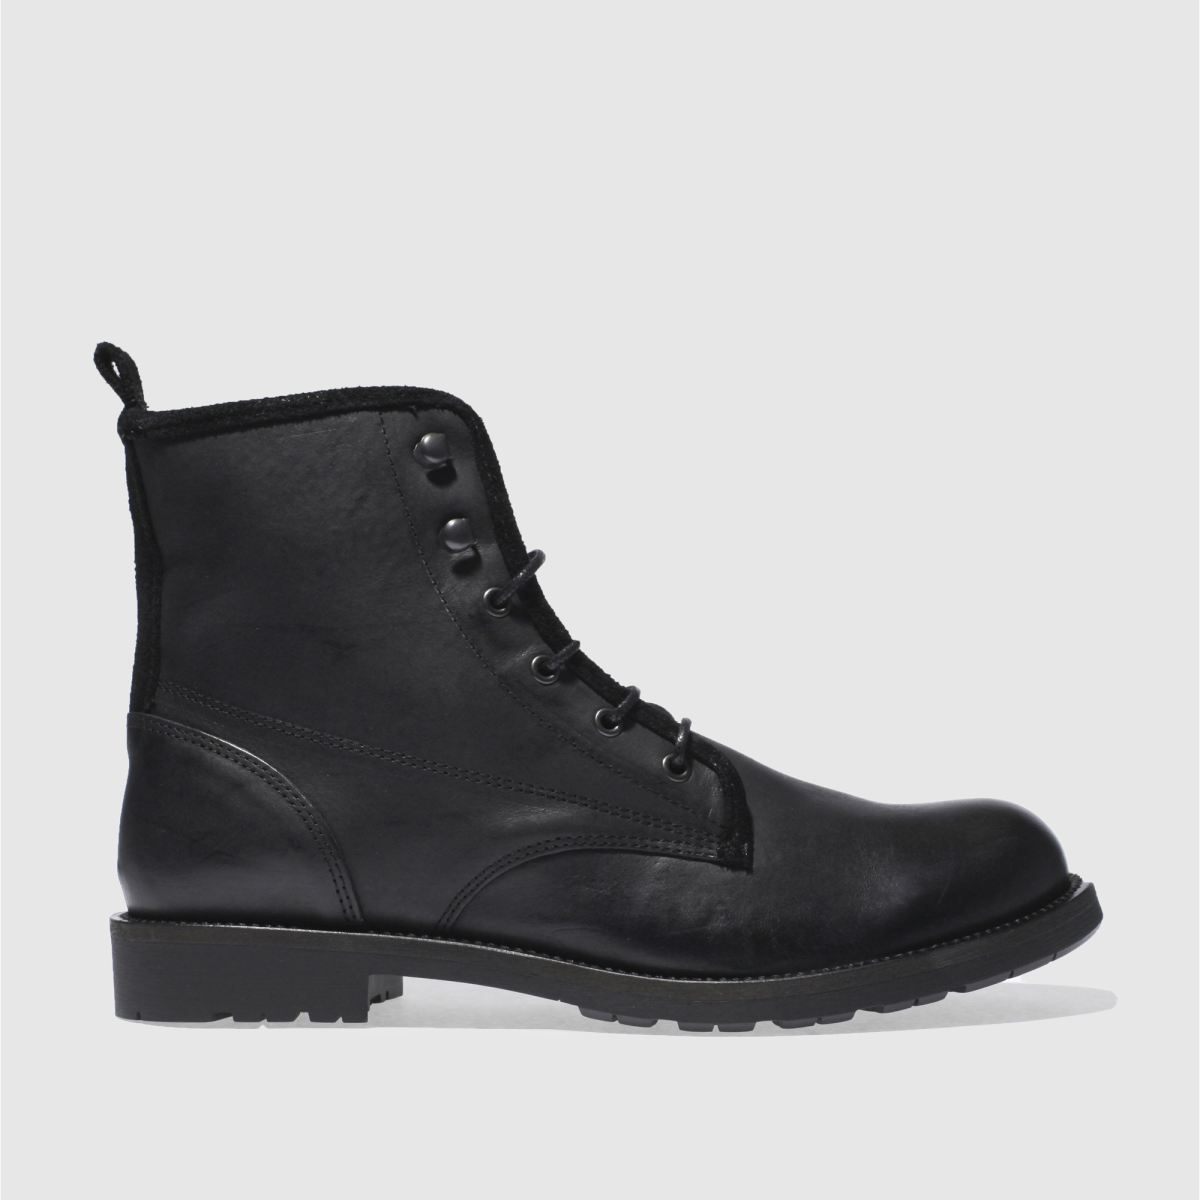 schuh black sewell military boot boots